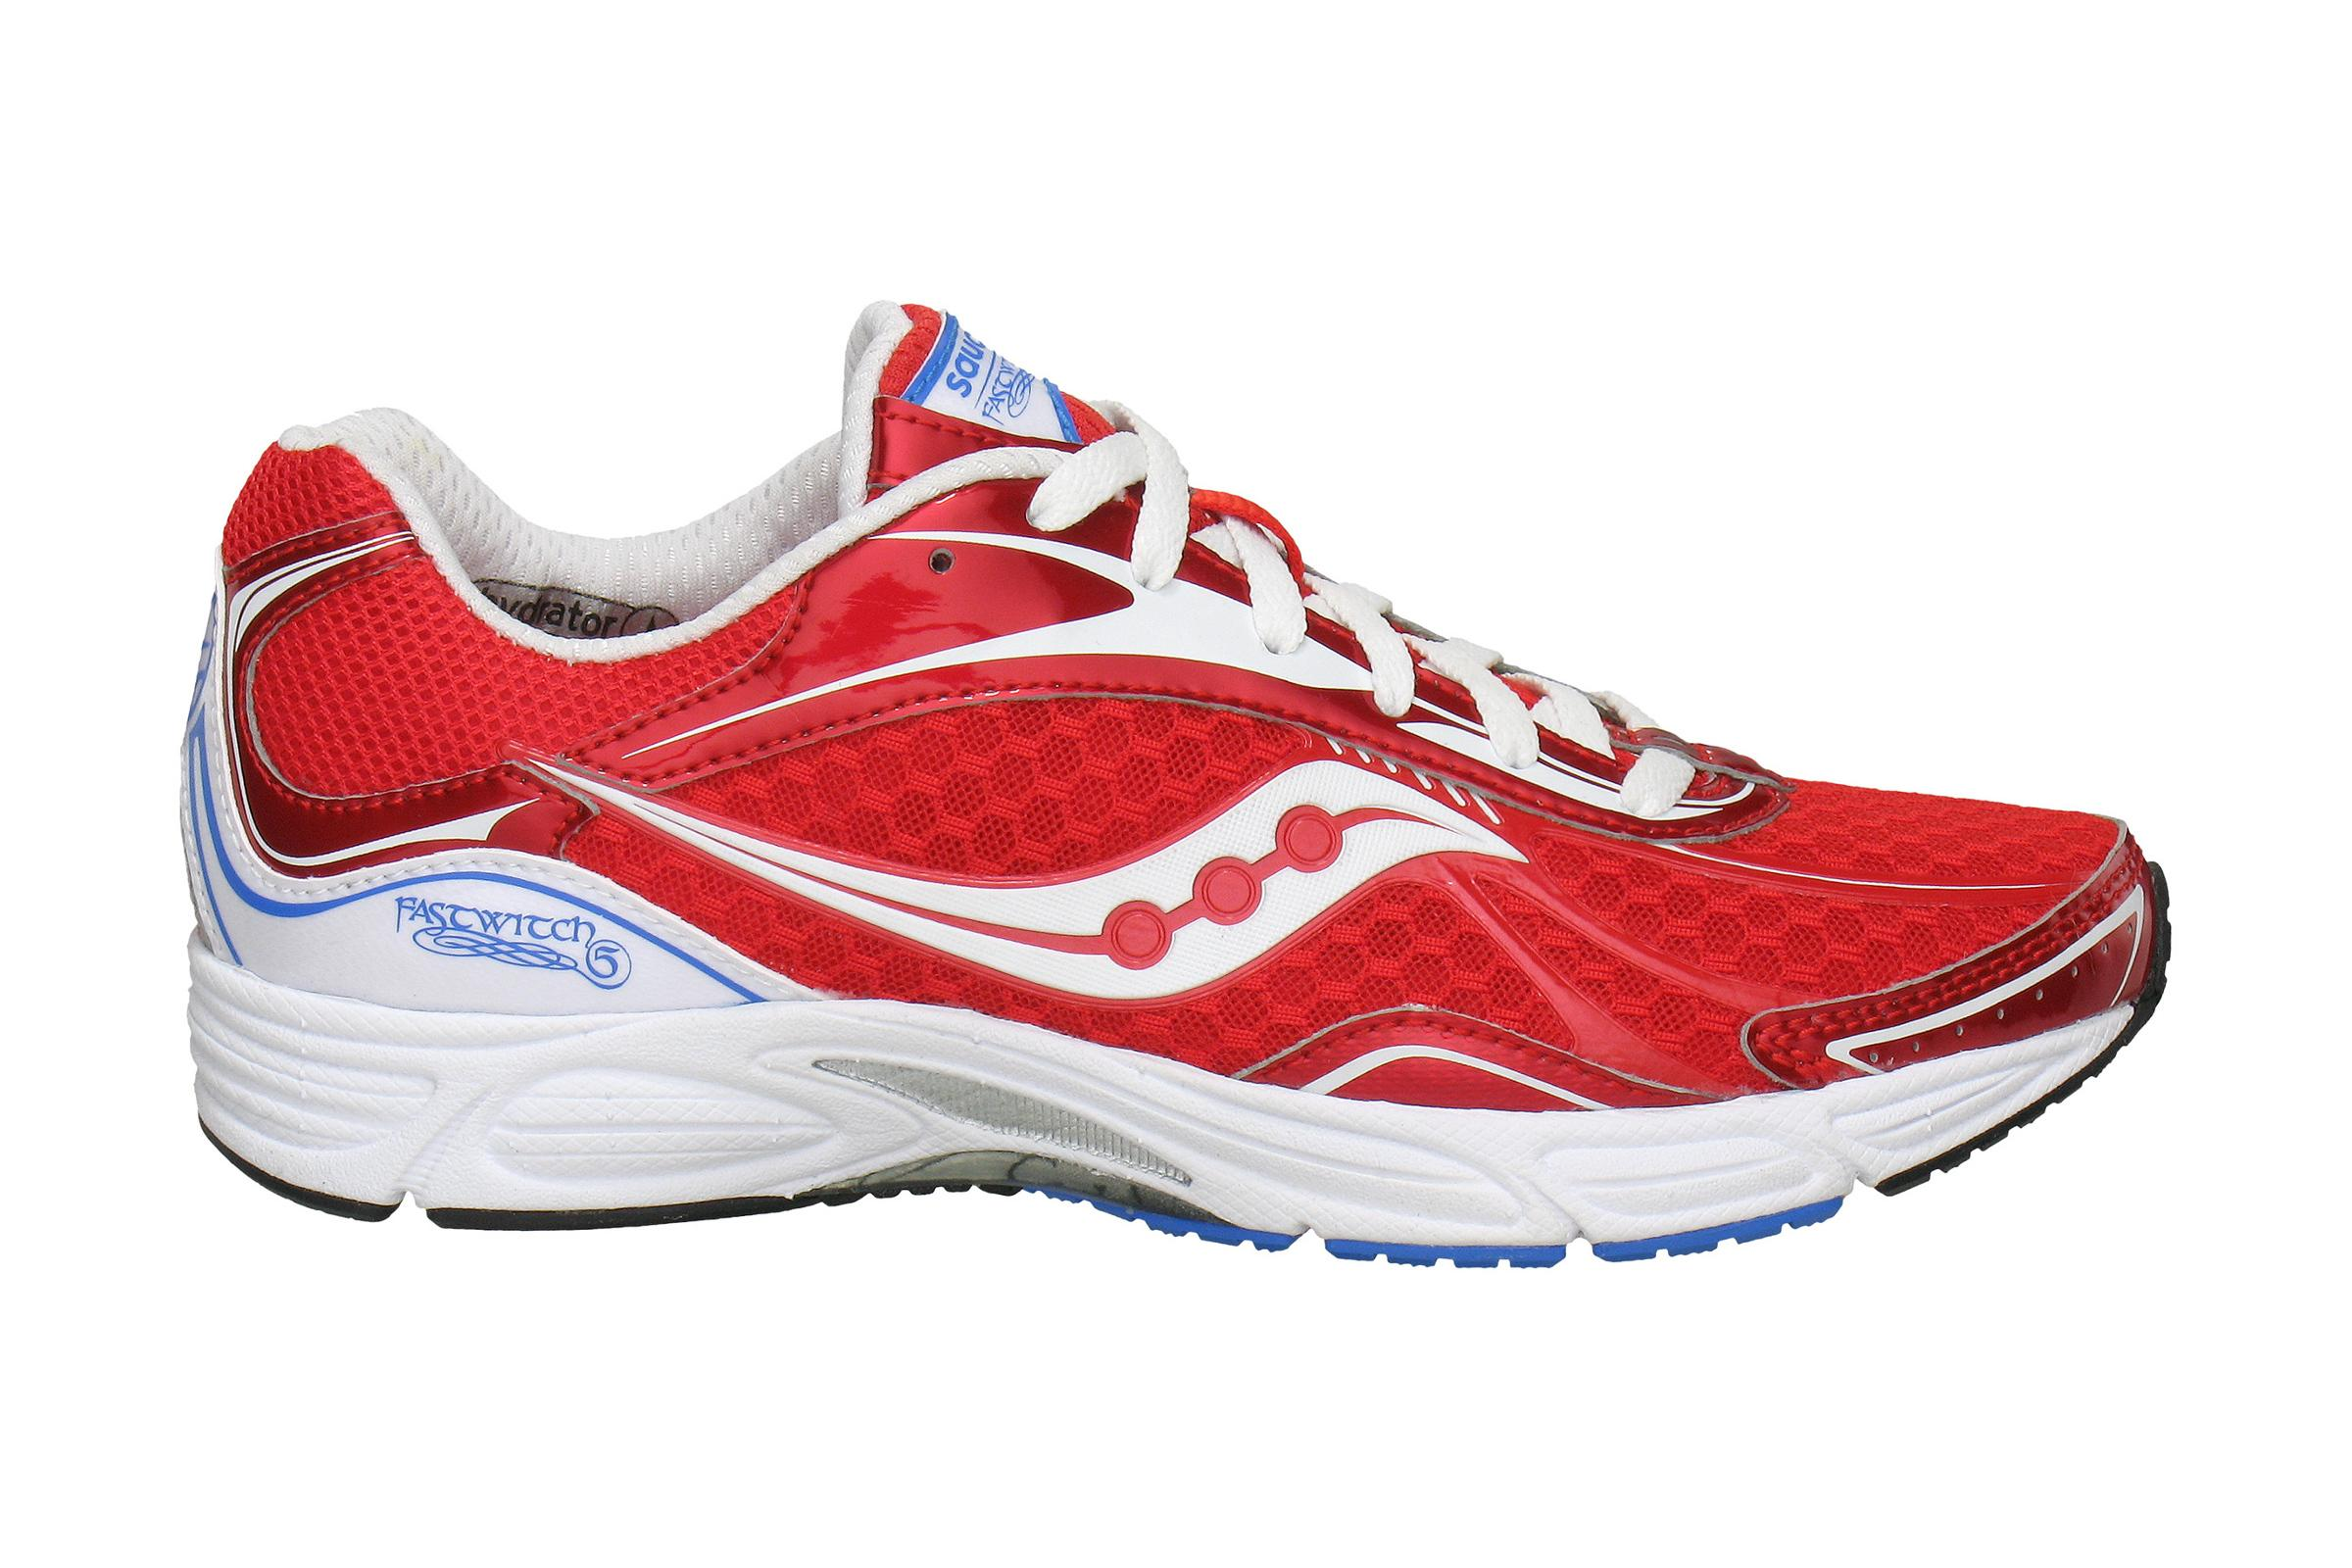 Foto Zapatillas de competición saucony Grid Fastwitch 5 red/white/blu, ...